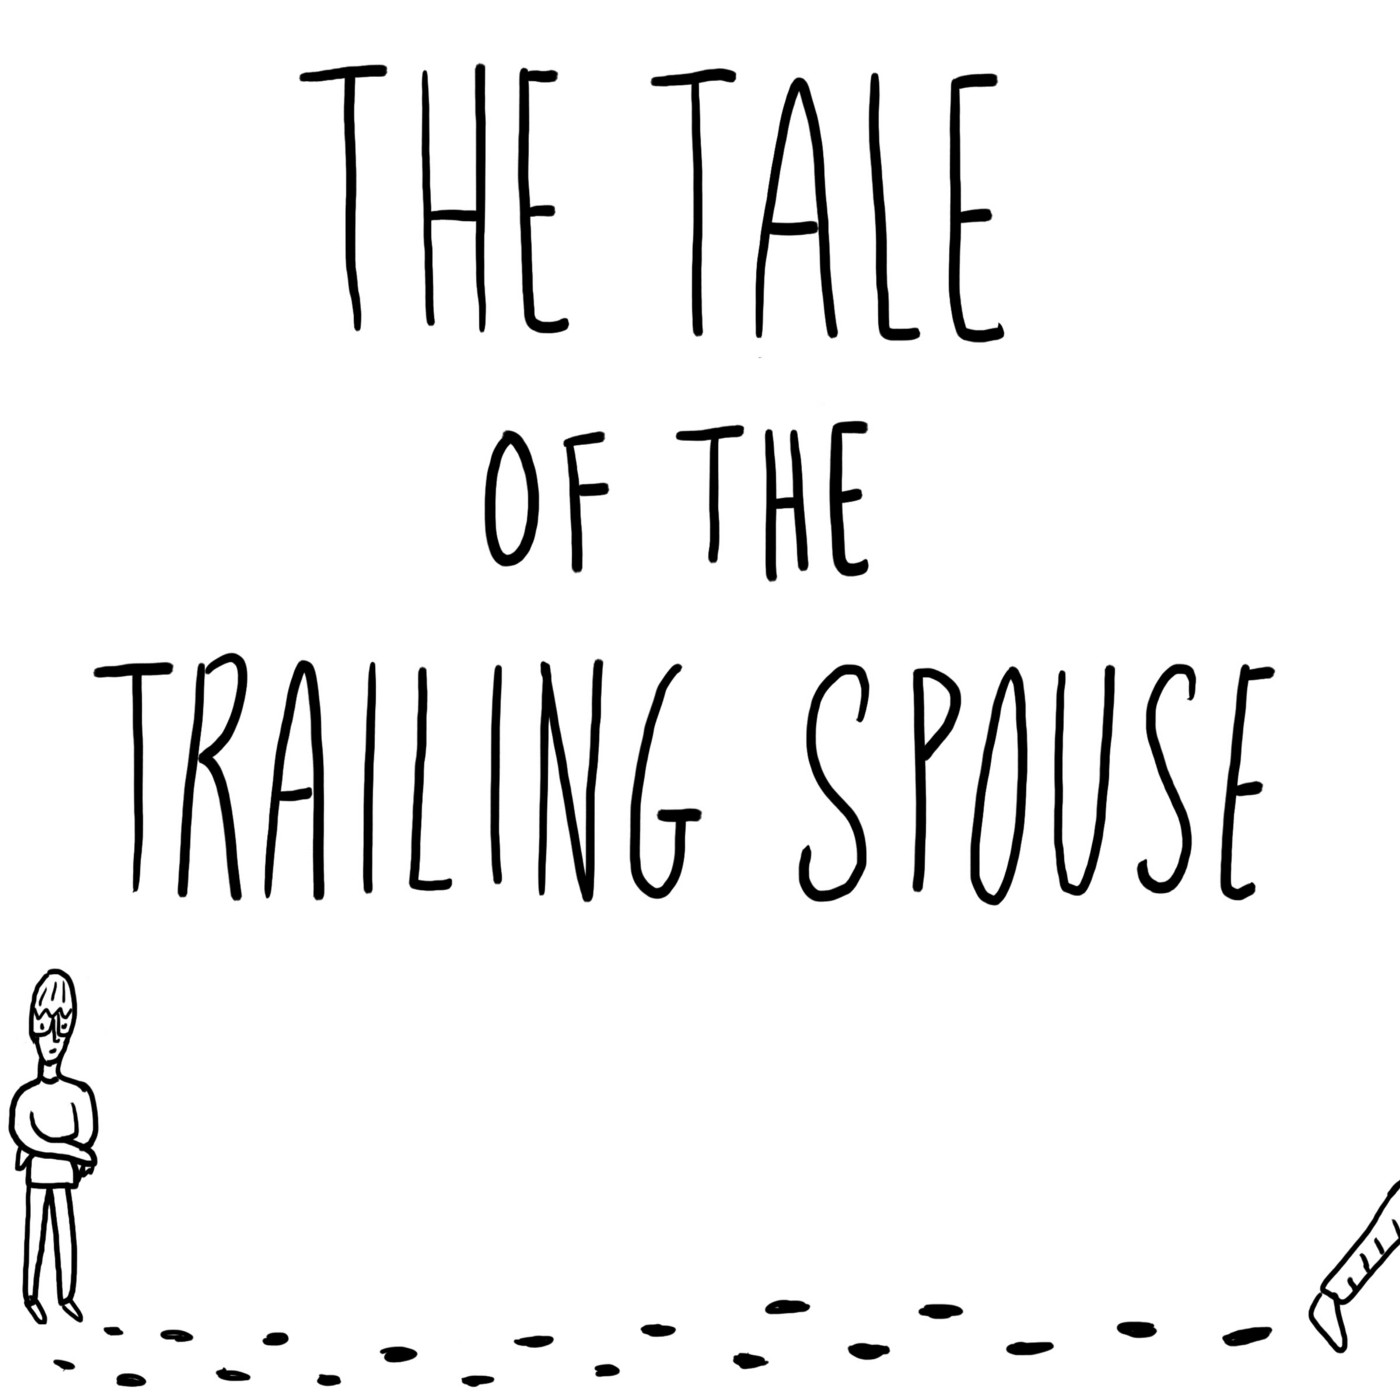 Large text: The Tail of the Trailing Spouse. A sad-looking person stands at the bottom left corner, looking at a trail of footprints that leads to the right corner, where their spouse's leg is visible mid-step.